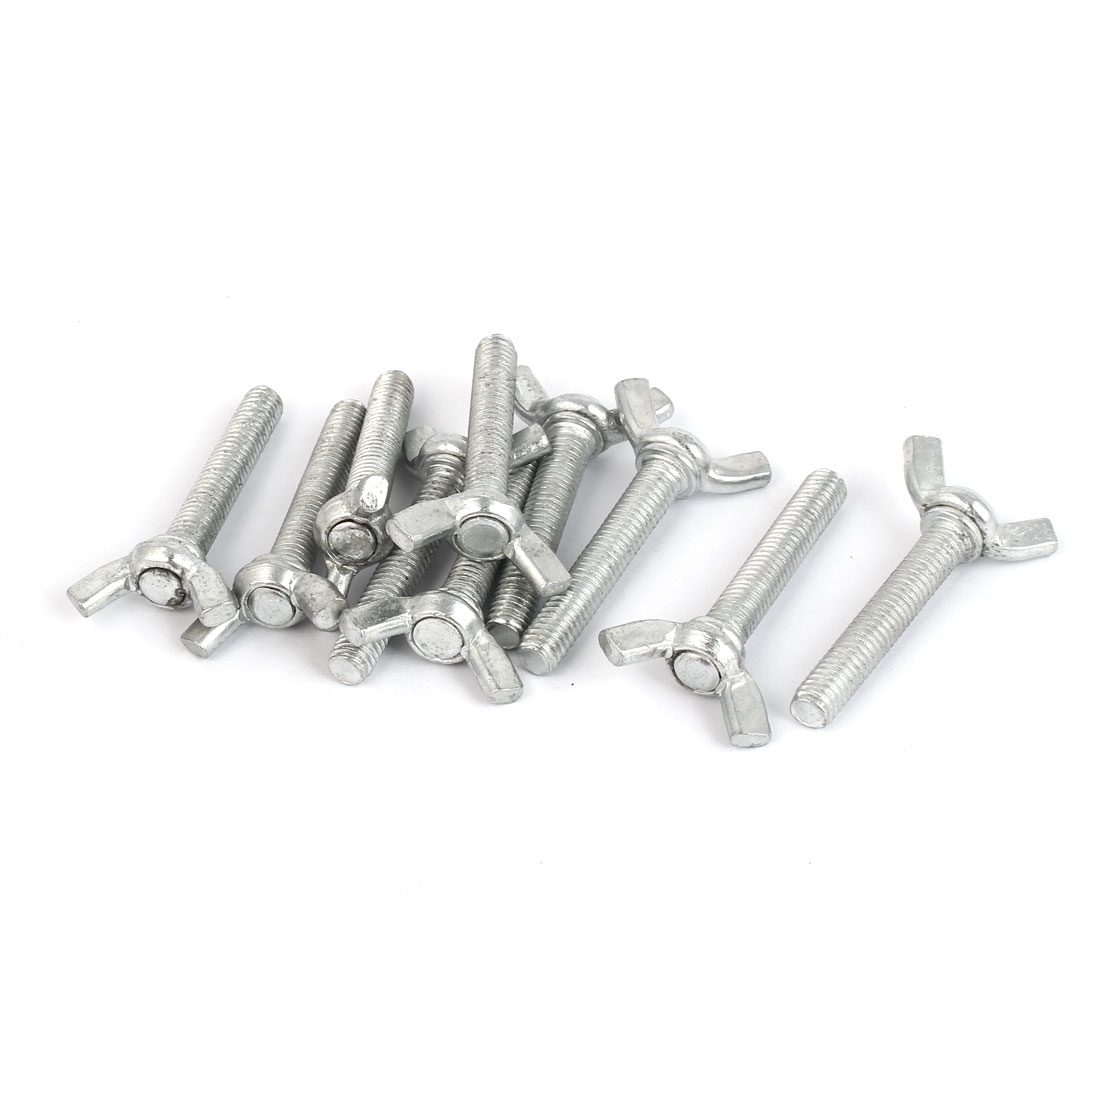 Metal Wing Bolt Butterfly Screw Fastener Metric M6 x 35mm 10pcs